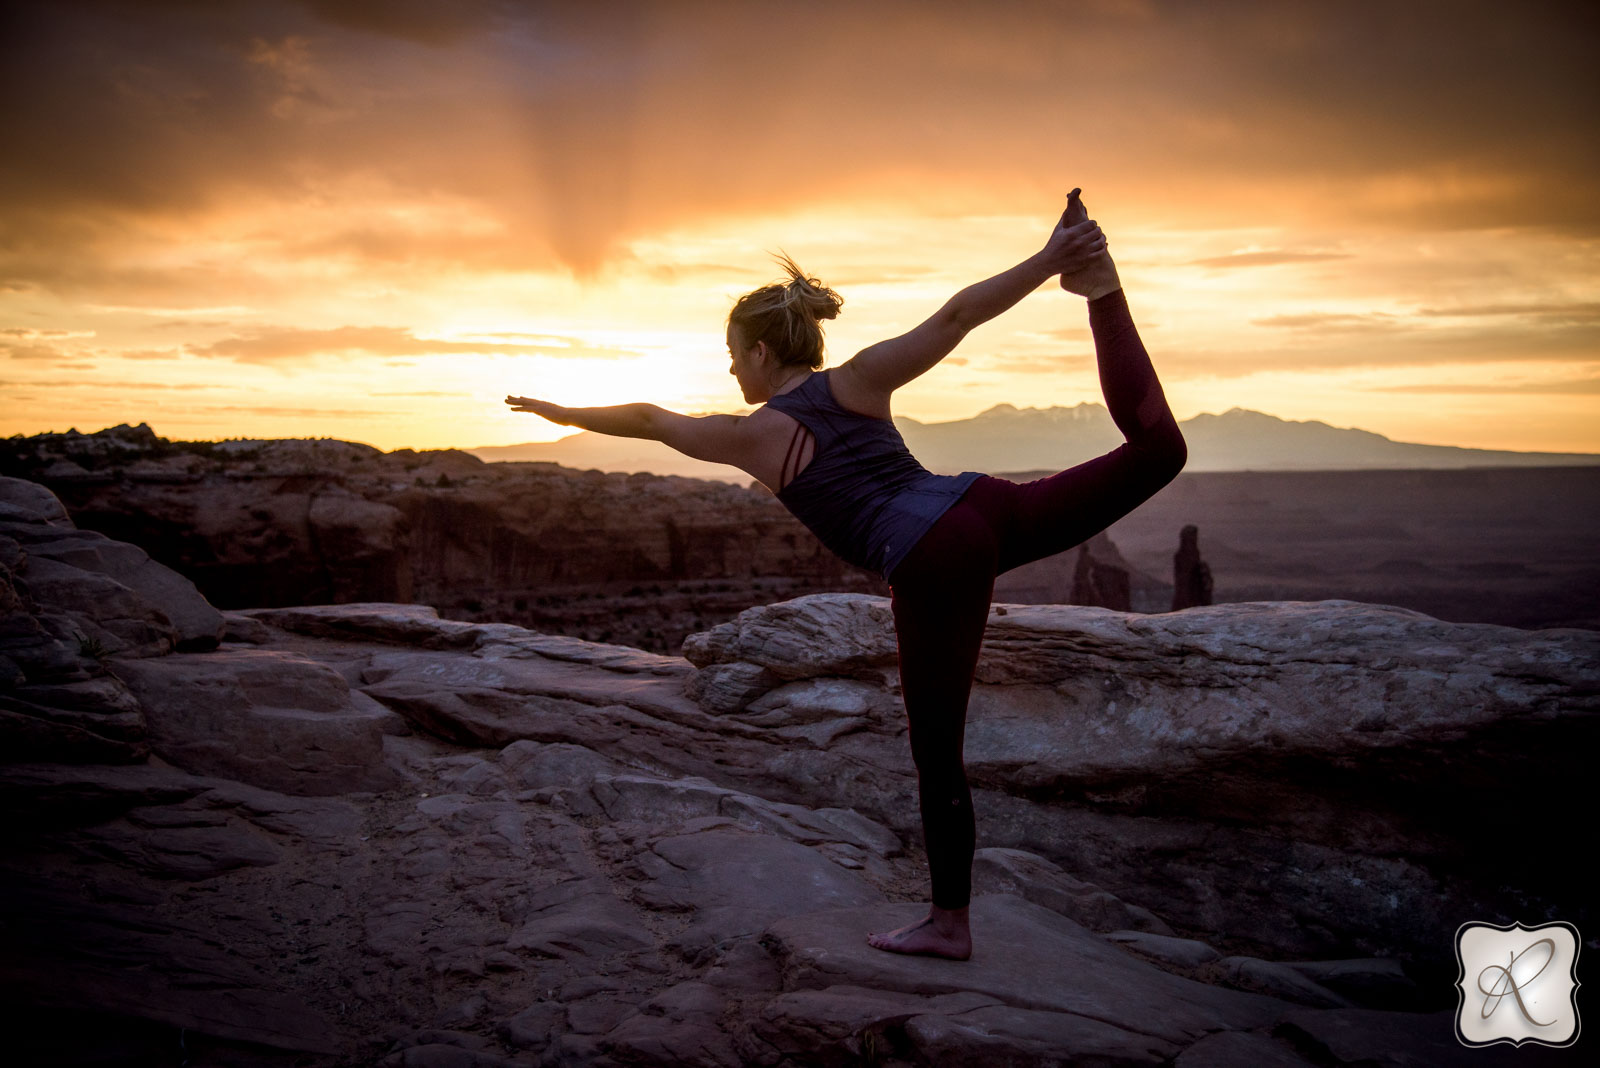 Moab Yoga >> Moab Yoga Shoot